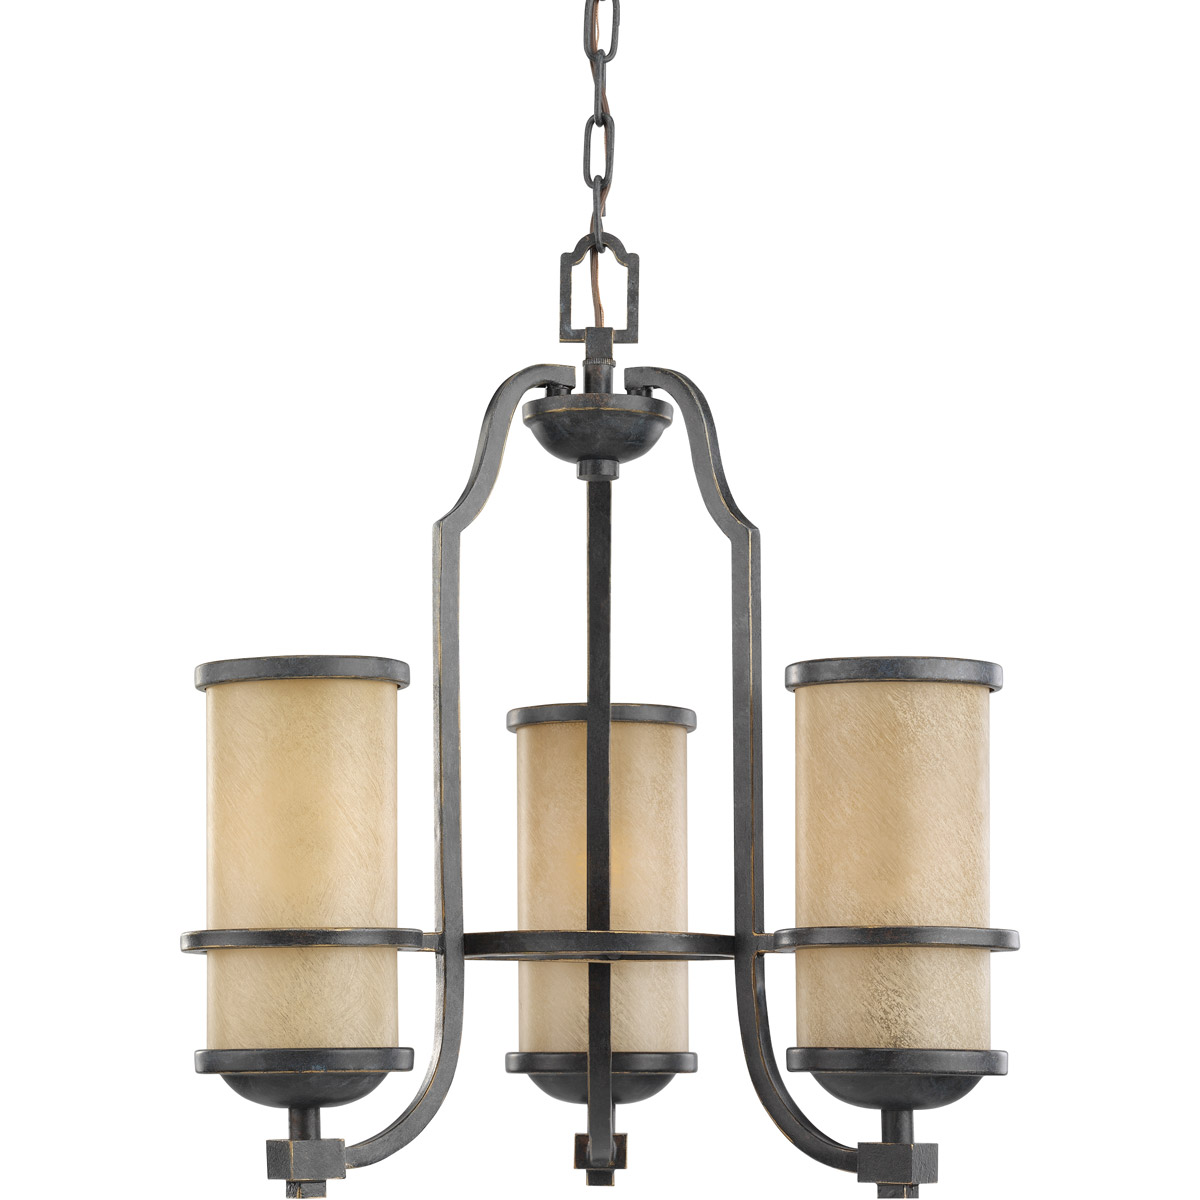 Sea Gull Lighting Roslyn 3 Light Chandelier in Flemish Bronze 31520-845